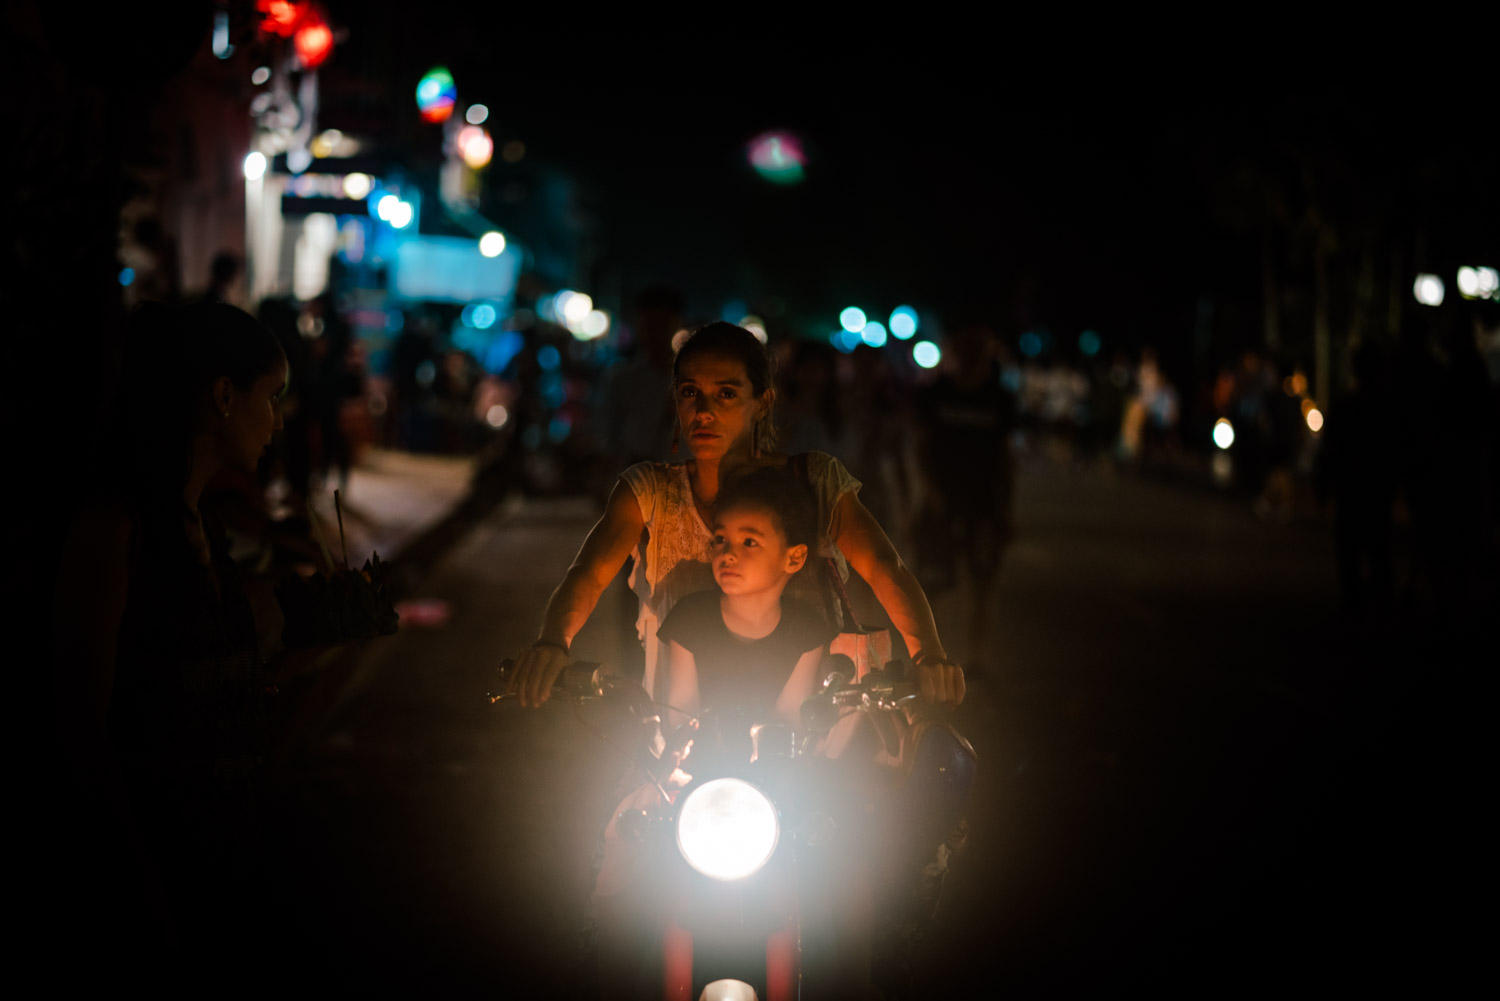 Motorcycle Babes, Laos